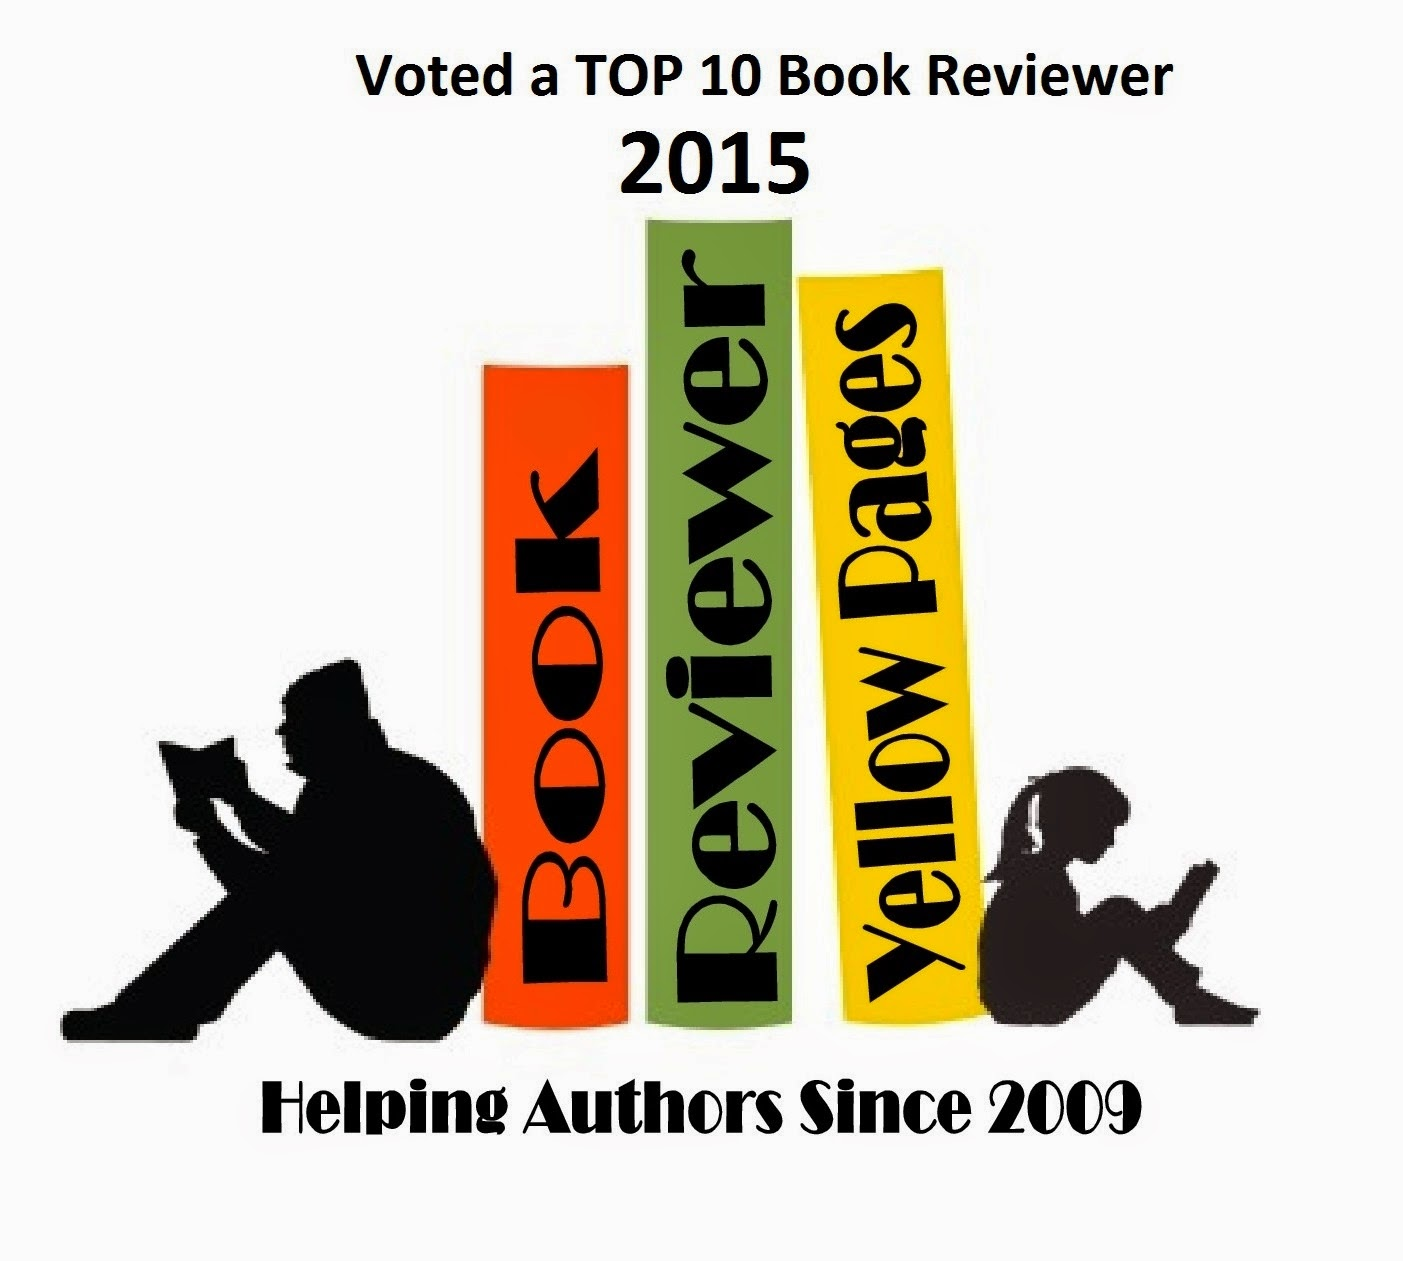 Voted a Top 10 Book Reviewer 2015